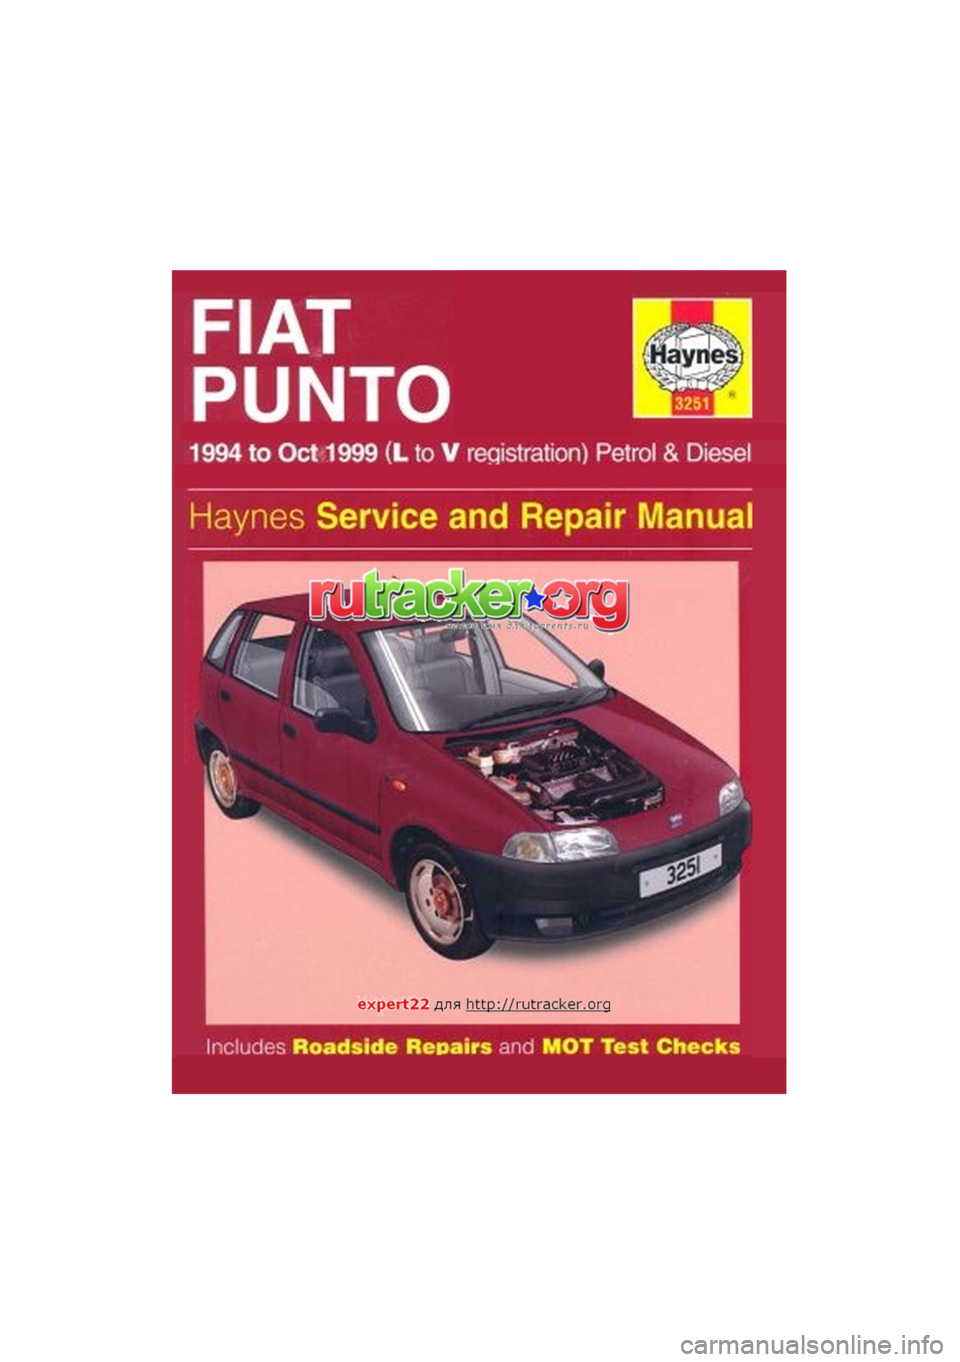 fiat punto 1994 176 1 g workshop manual rh carmanualsonline info haynes manual punto mk1 punto haynes manual